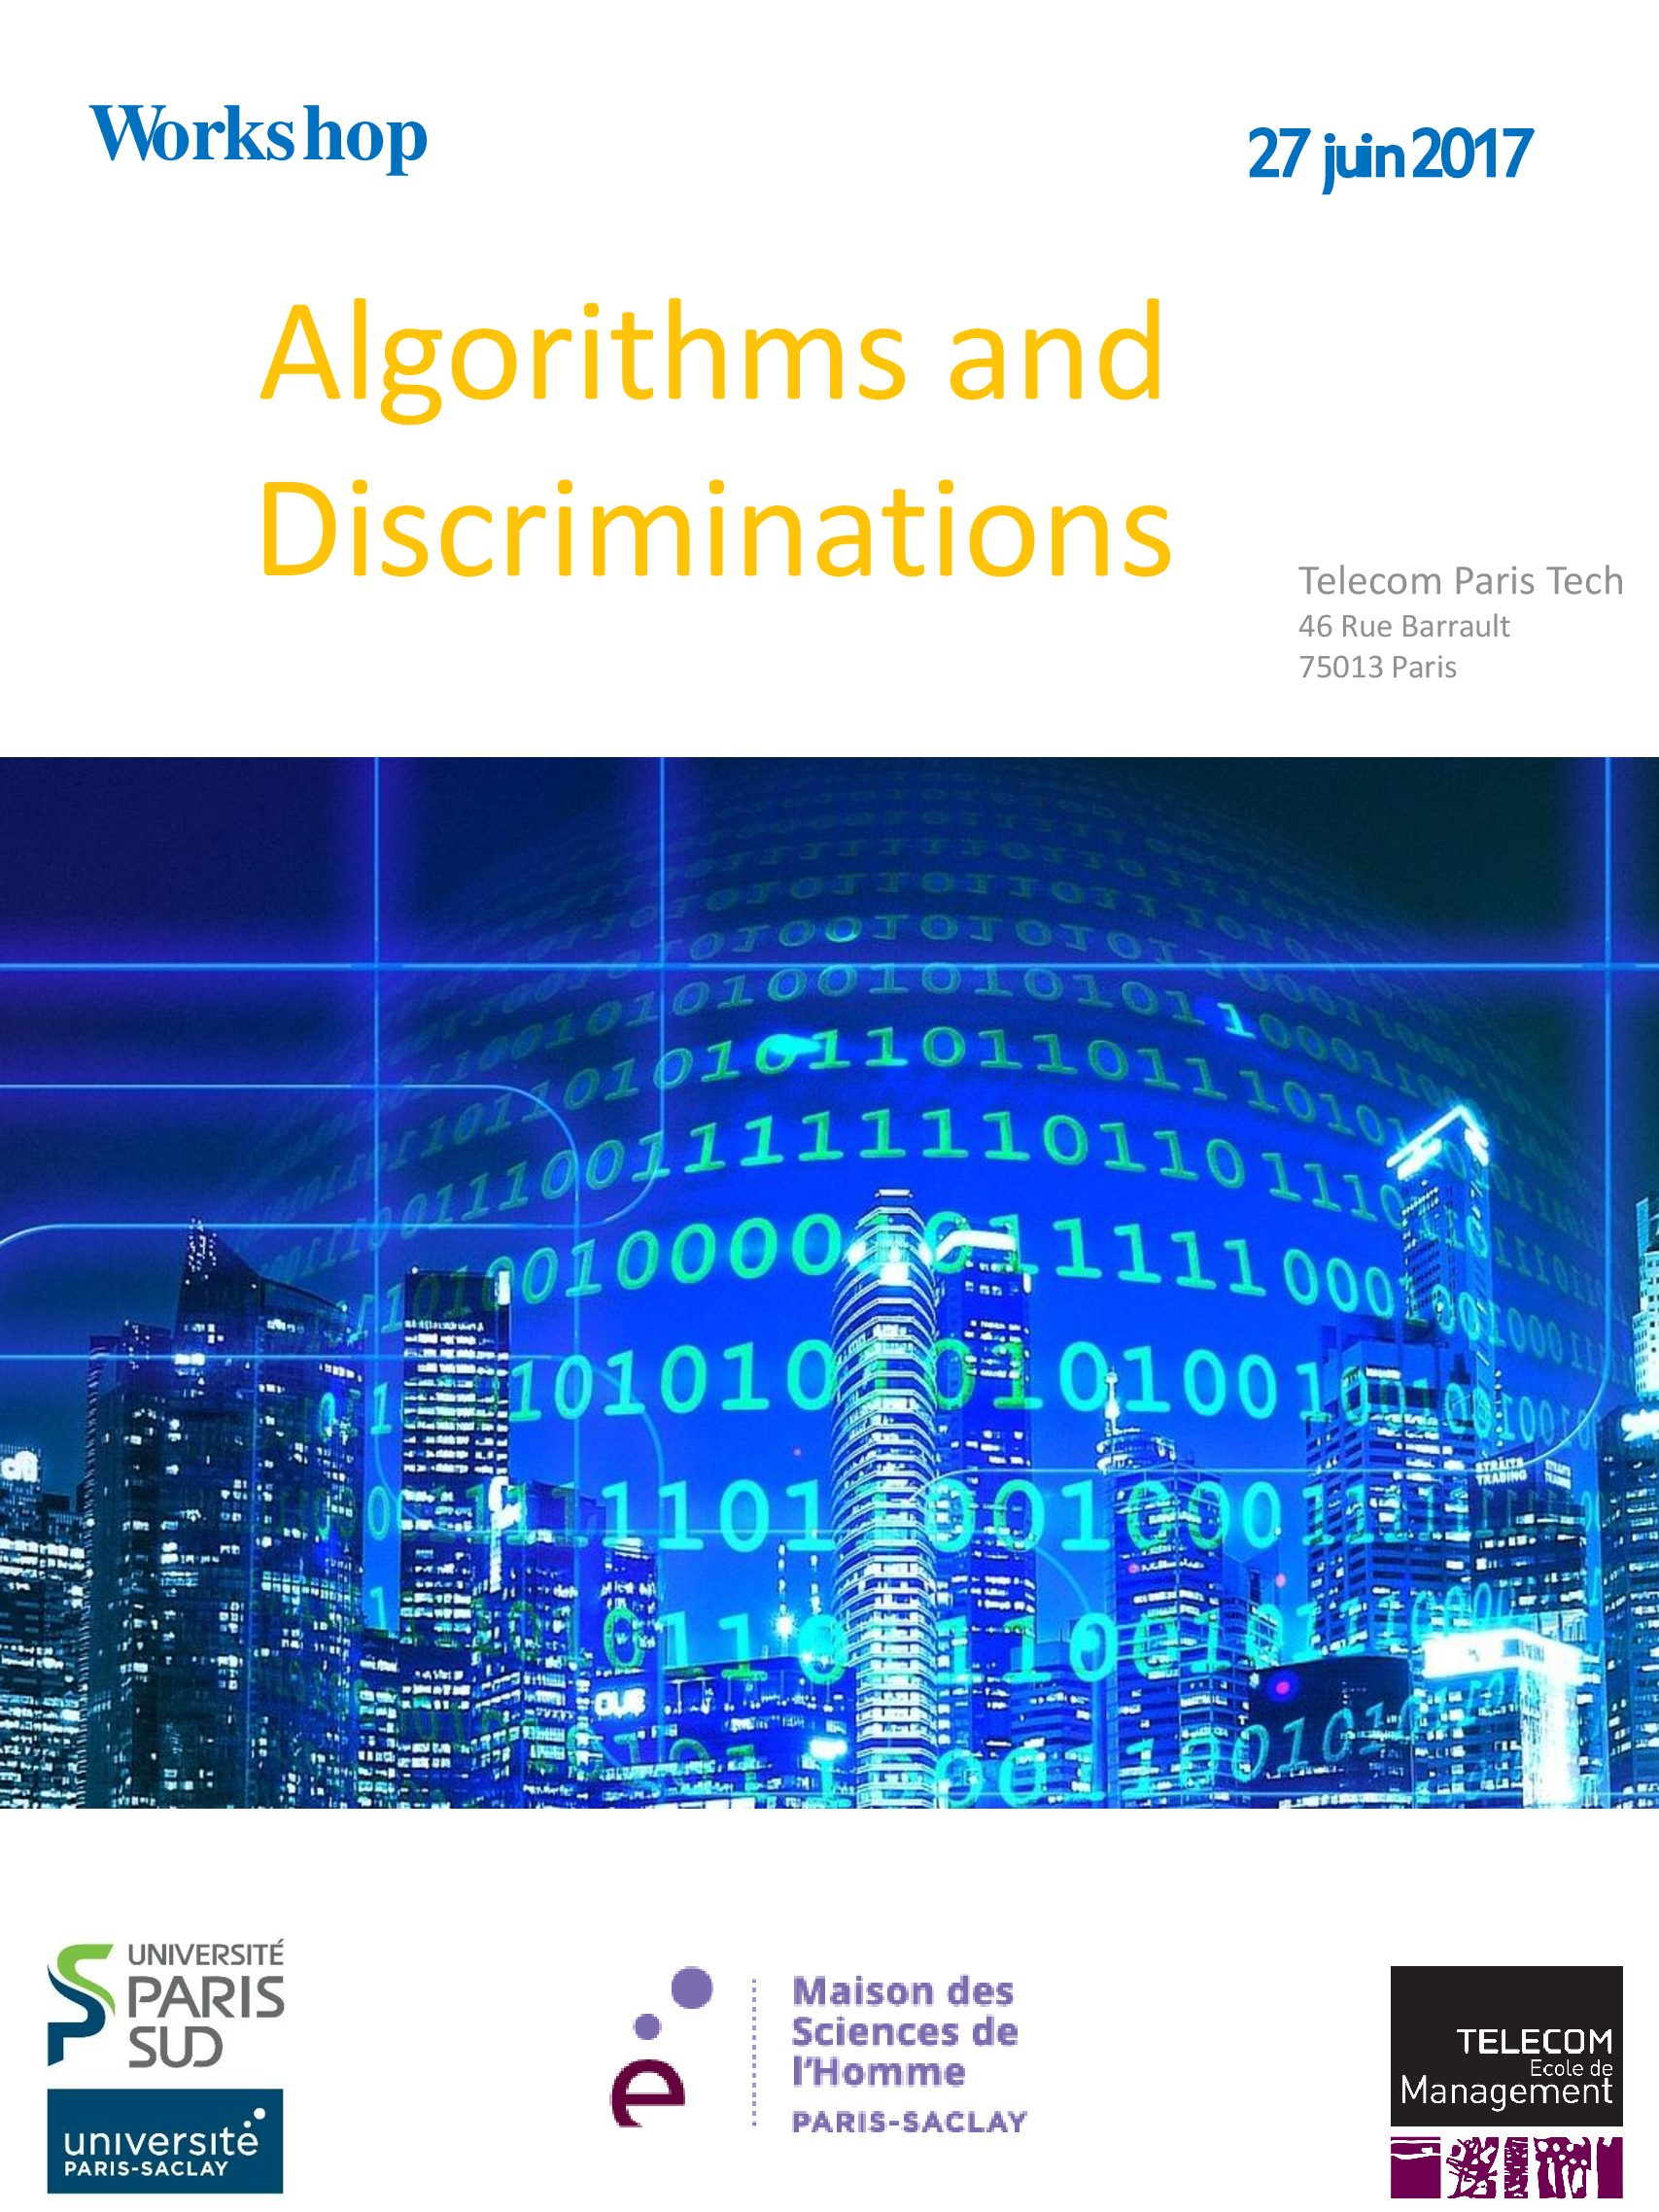 Workshop « Algorithms and Discriminations » – 27/06/2017